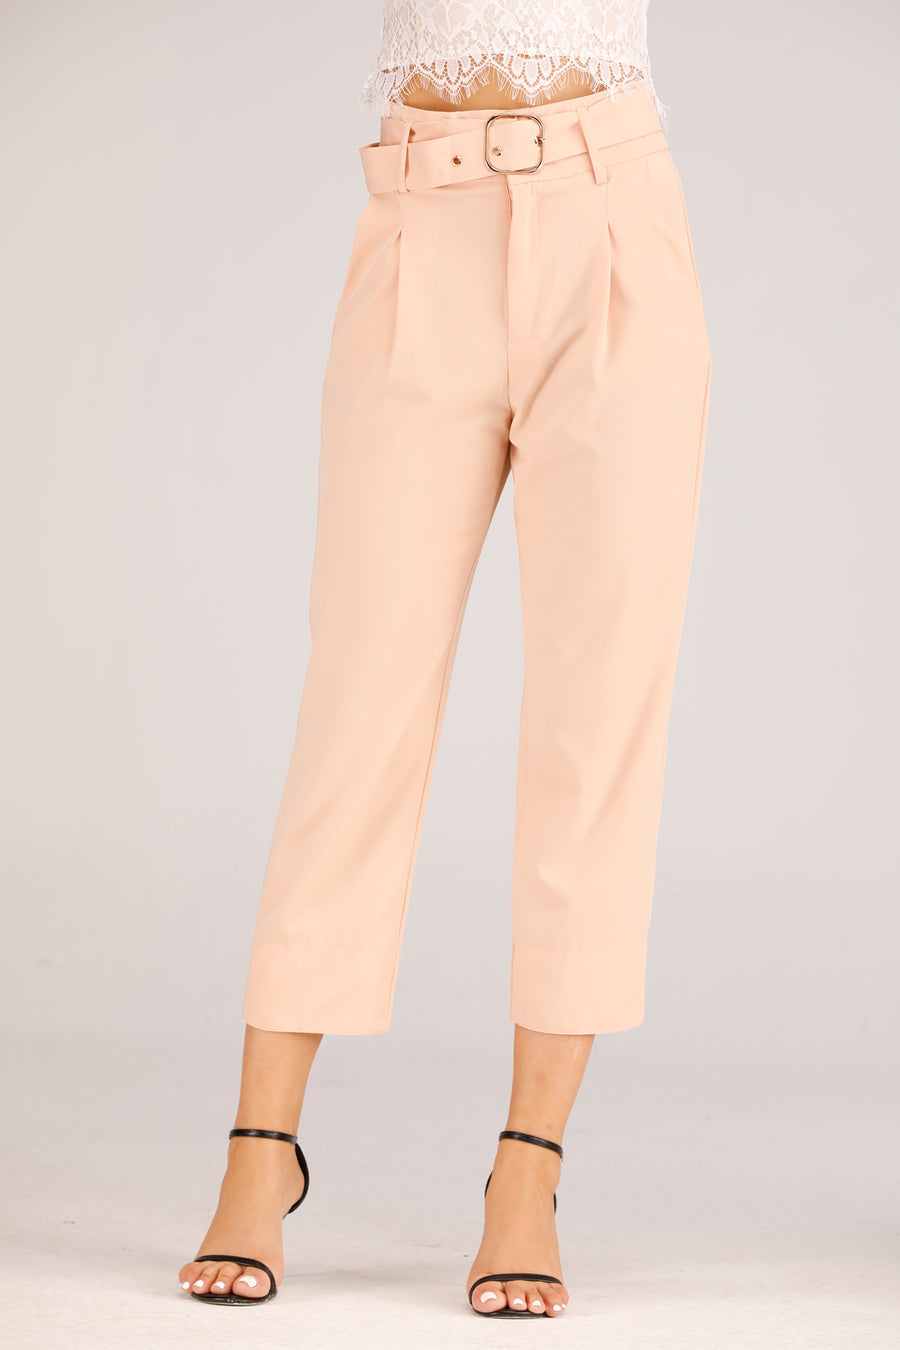 Mantra Pakistan Peach Formal Pants With Belt | BOTTOMS